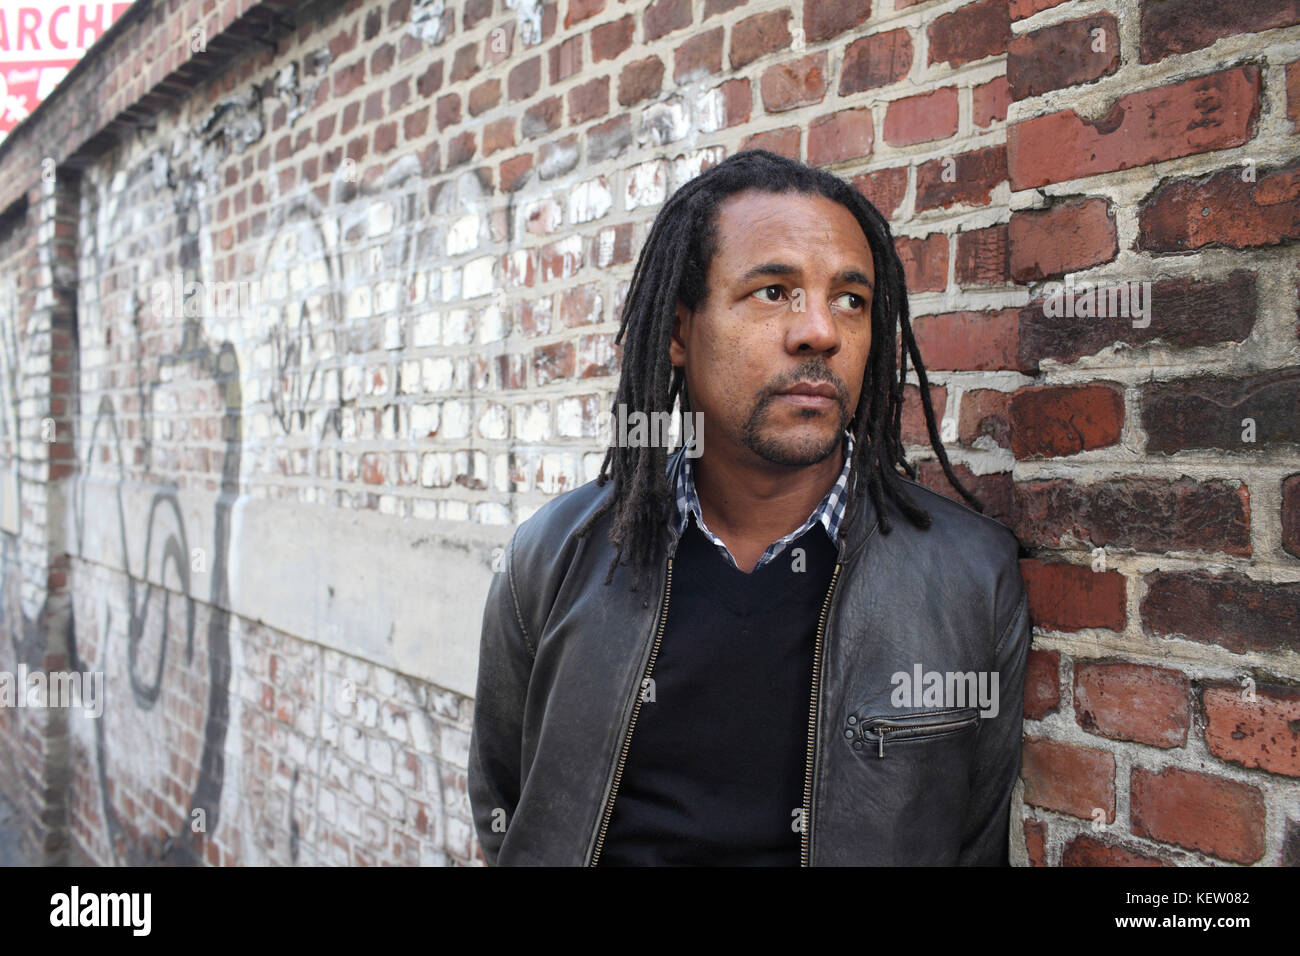 Colson WHITEHEAD - writer - 22-10-2017 ©Basso CANNARSA/Opale Stock Photo